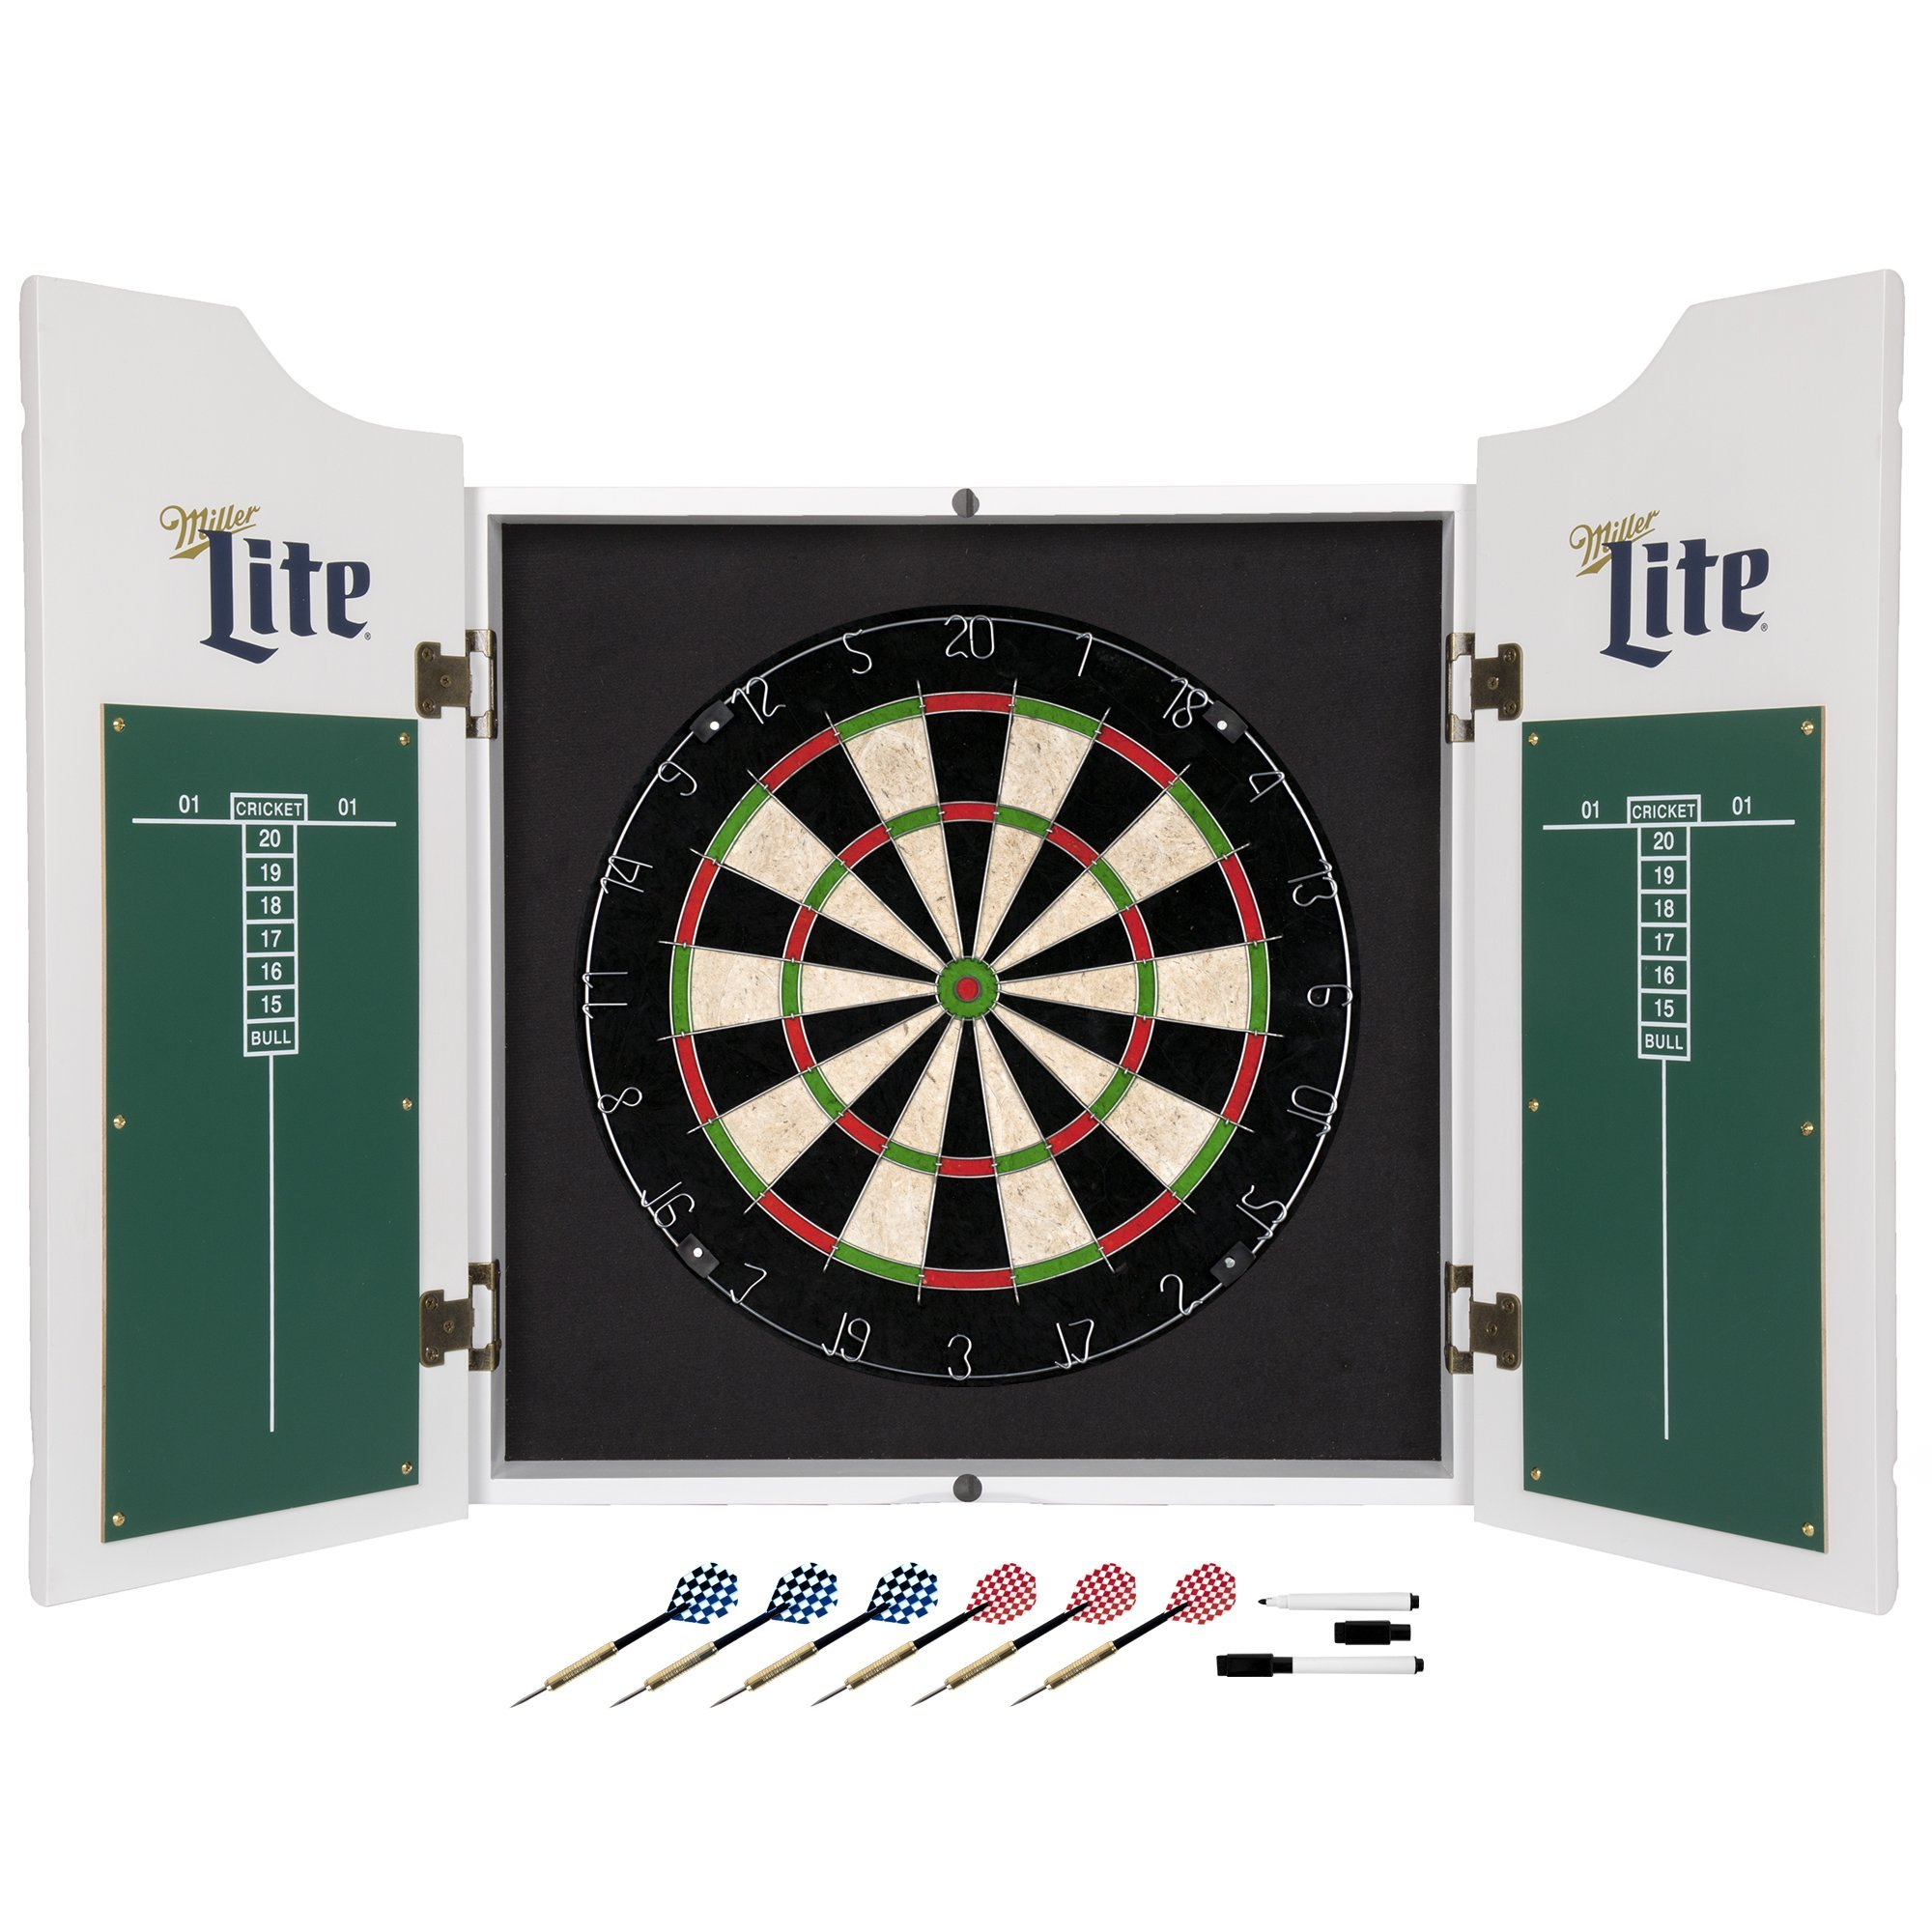 Officially Licensed Miller Lite Design Deluxe Wood Cabinet Complete Dart Set